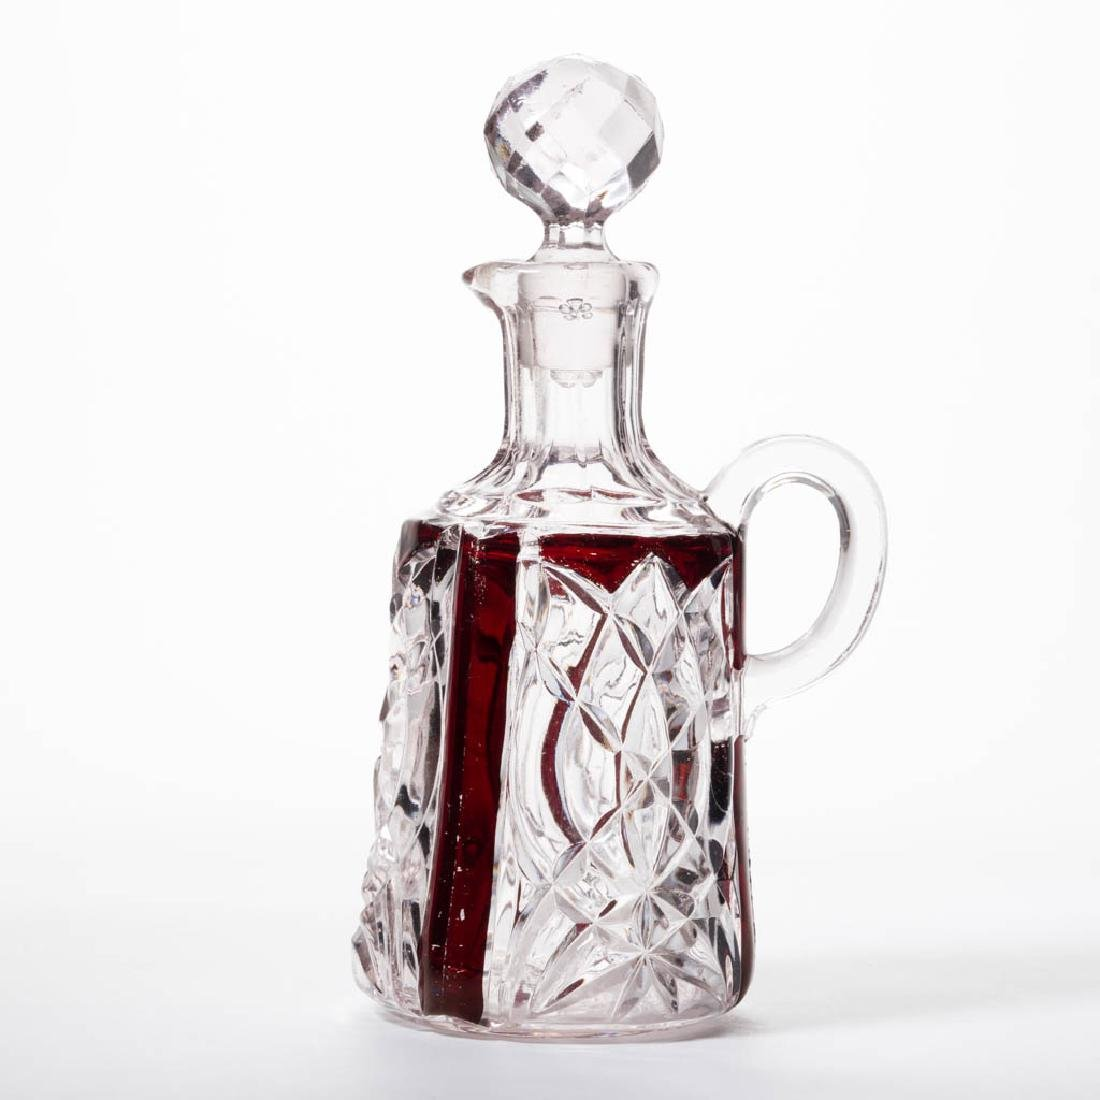 WIMPOLE - RUBY-STAINED CRUET / CATSUP DECANTER